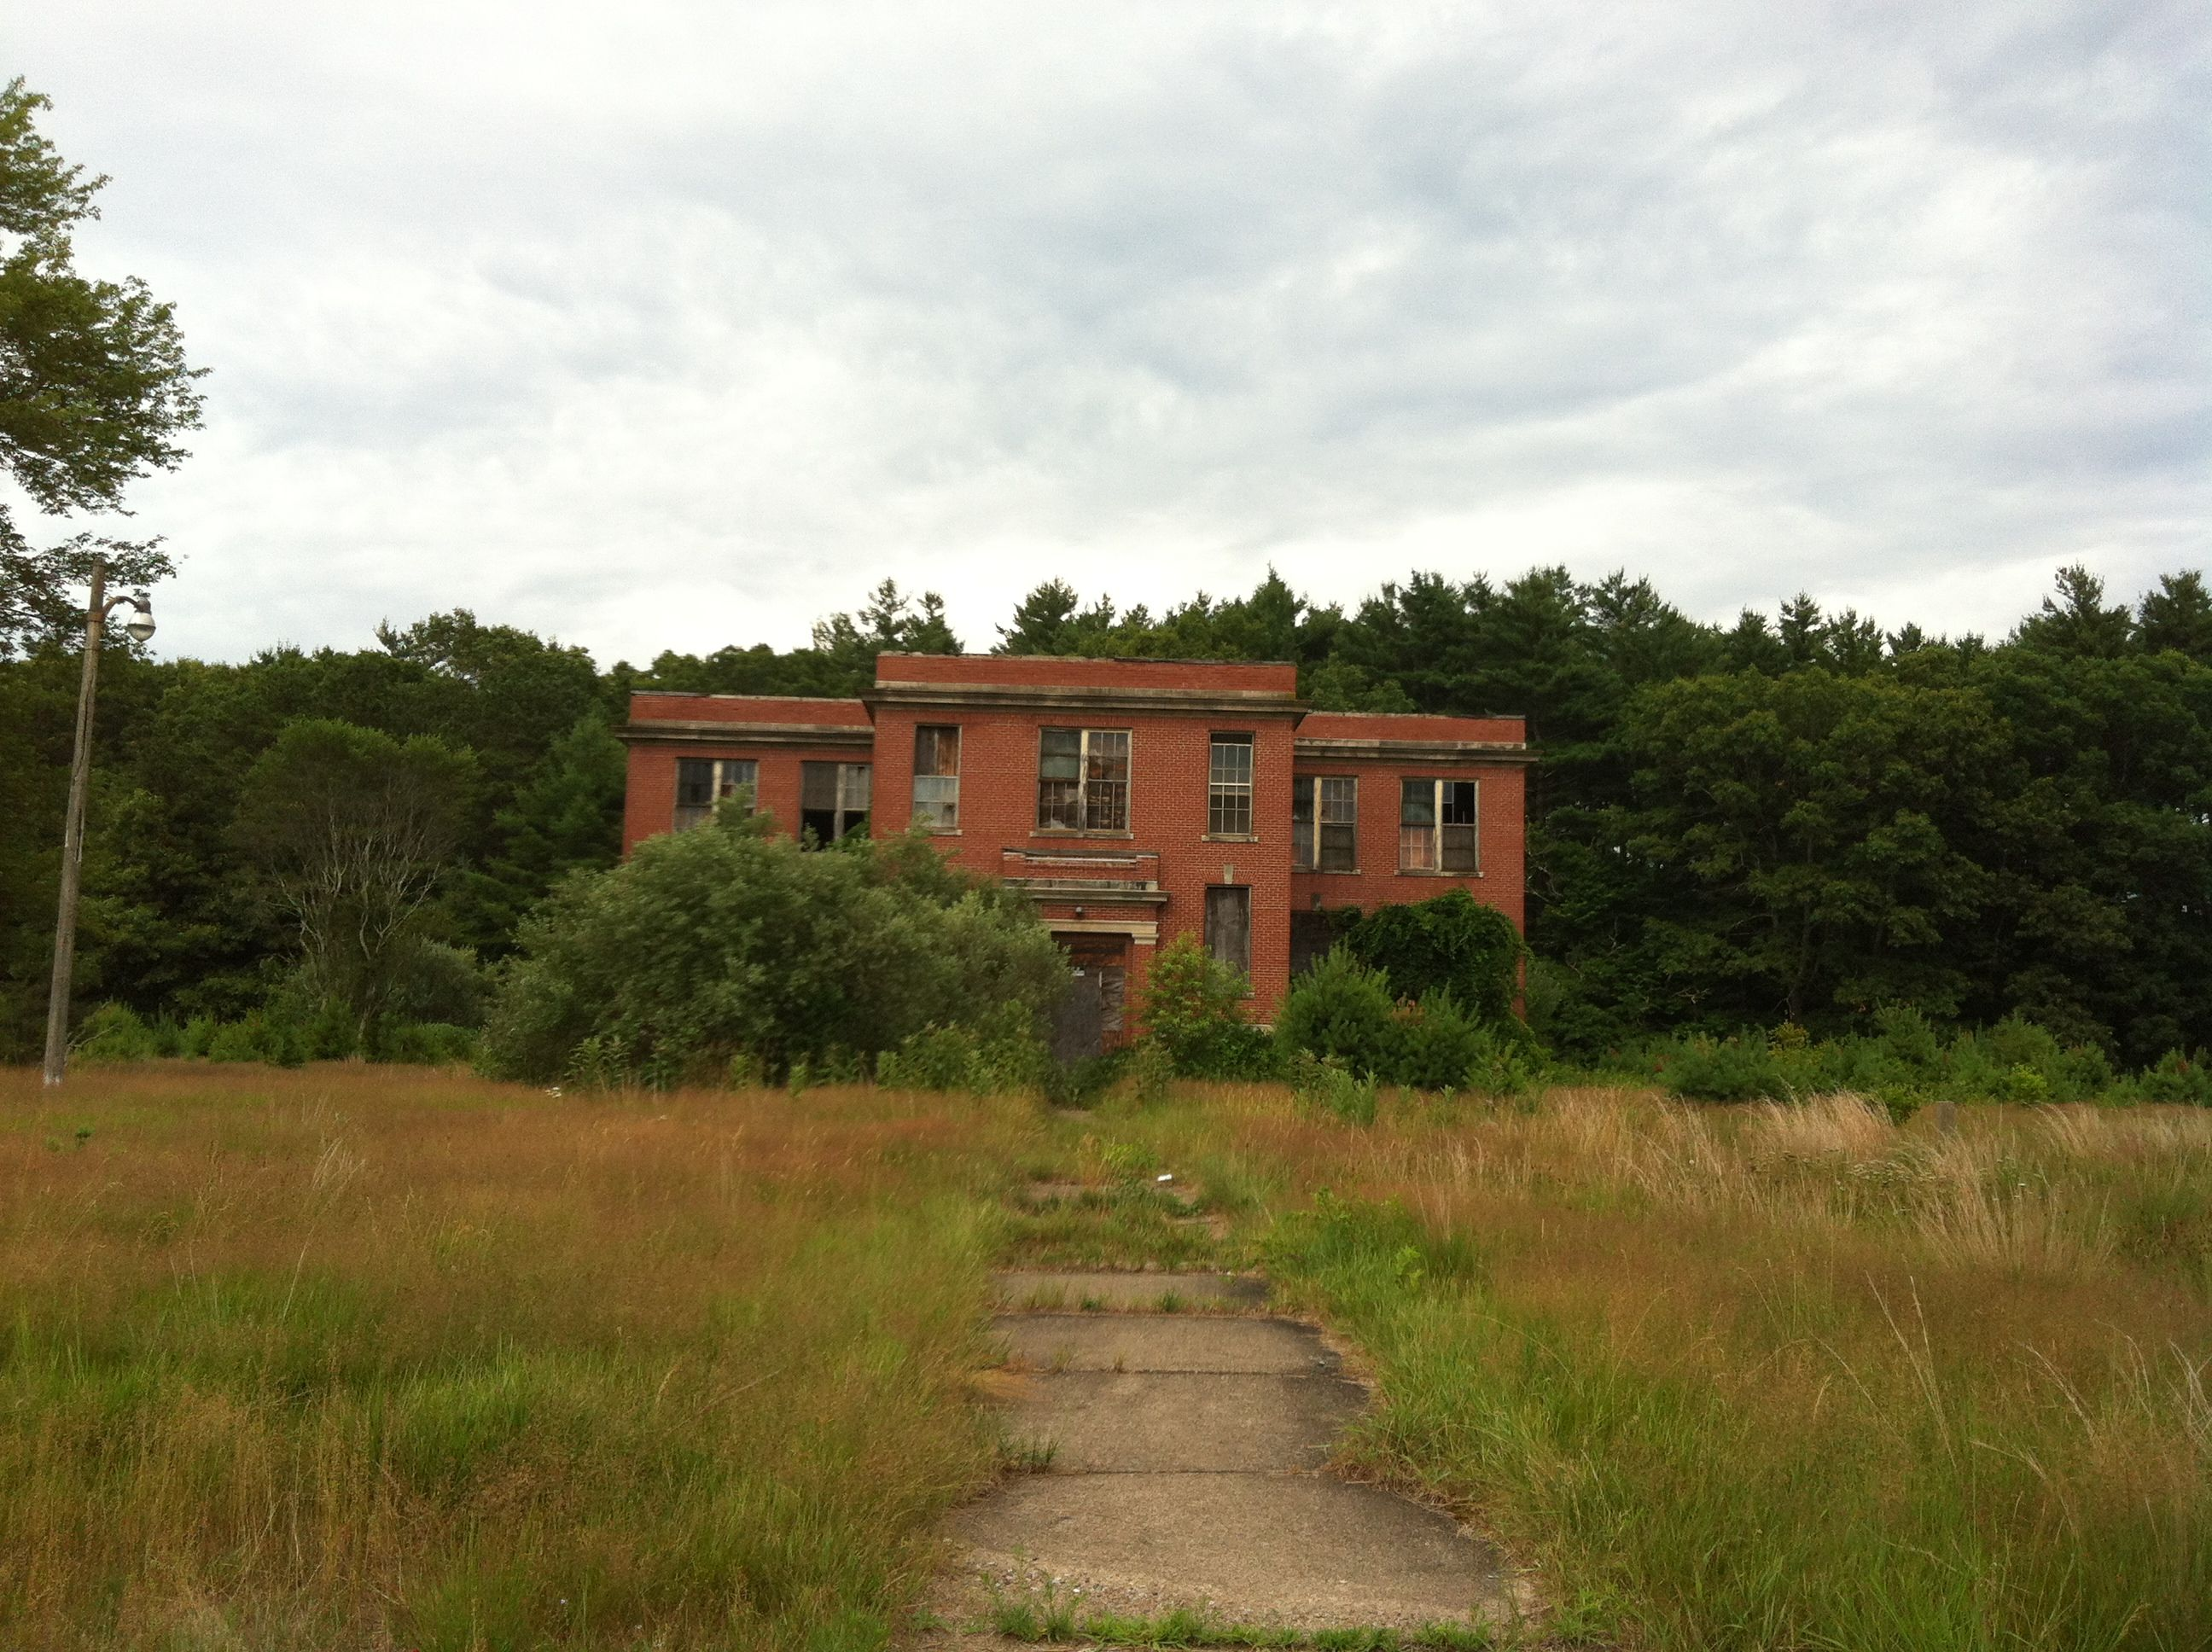 Creepy old Ladd School in Exeter Rhode Island